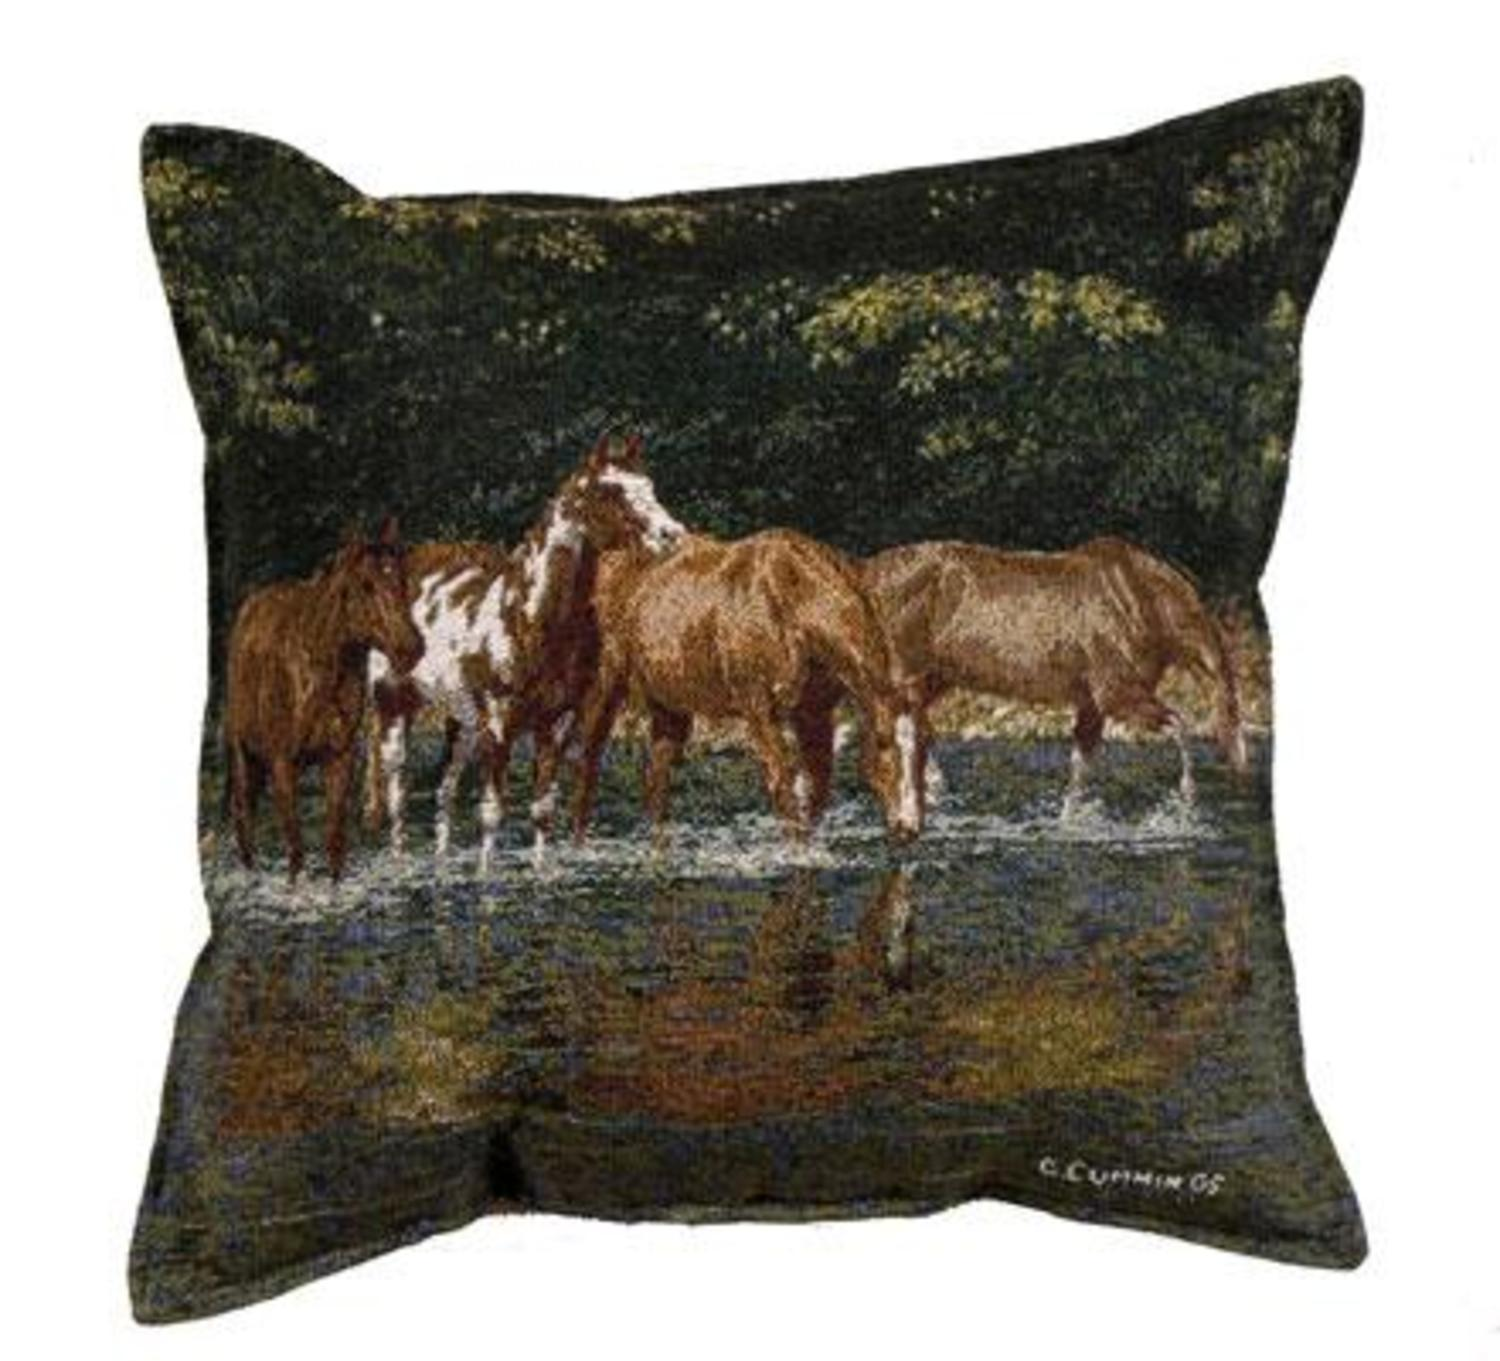 Pack of 2 Horse Reflections Tapestry Square Throw Pillows 17""